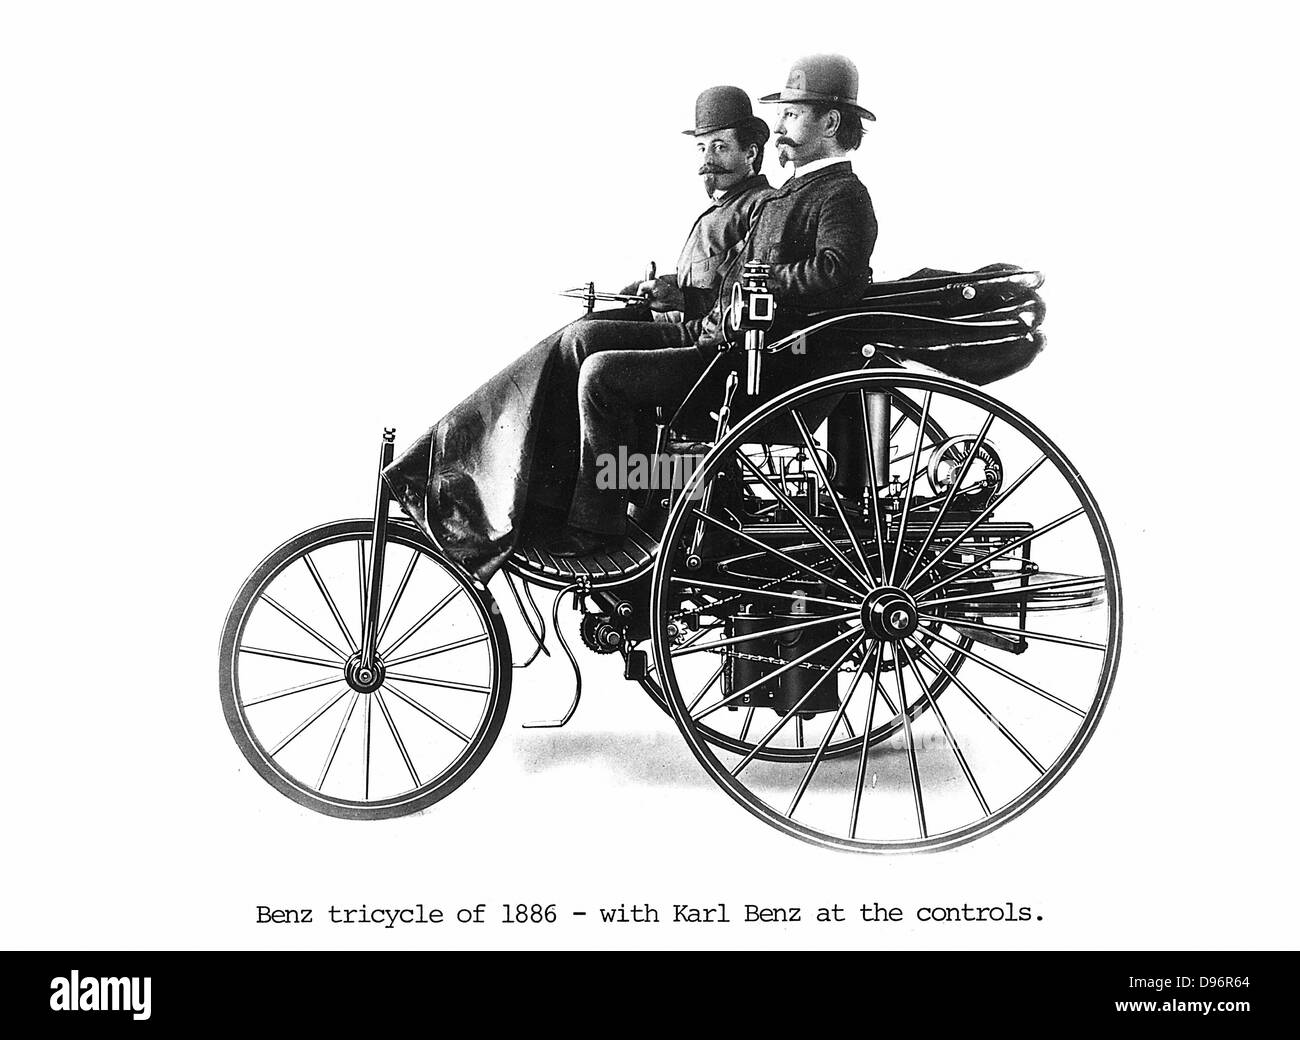 Benz tricycle of 1886 with Karl Benz (1844-1929), German engineer and car manufacturer, at the controls. - Stock Image